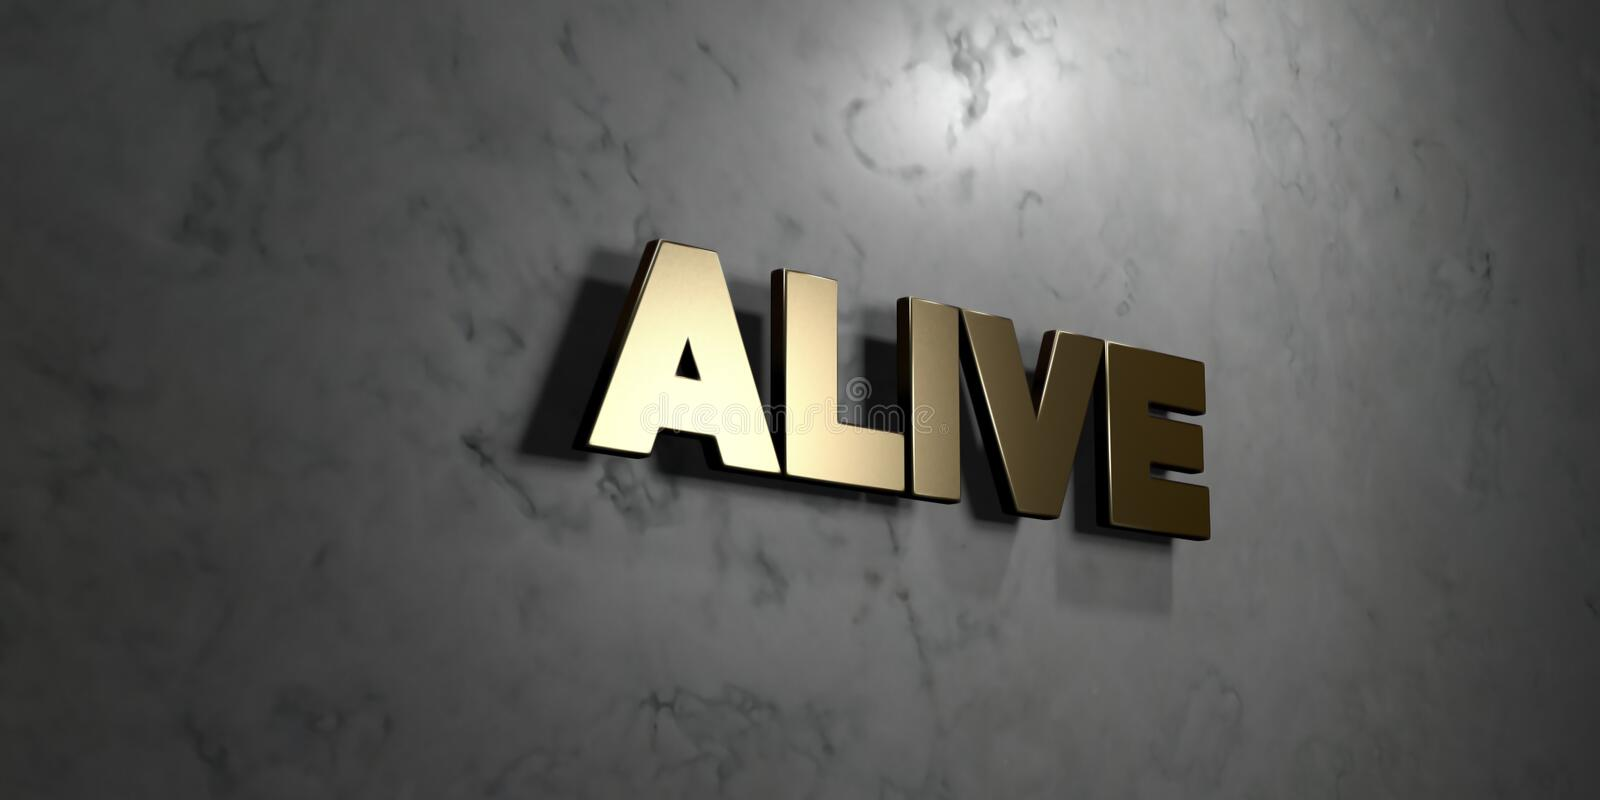 Alive - Gold sign mounted on glossy marble wall - 3D rendered royalty free stock illustration royalty free illustration